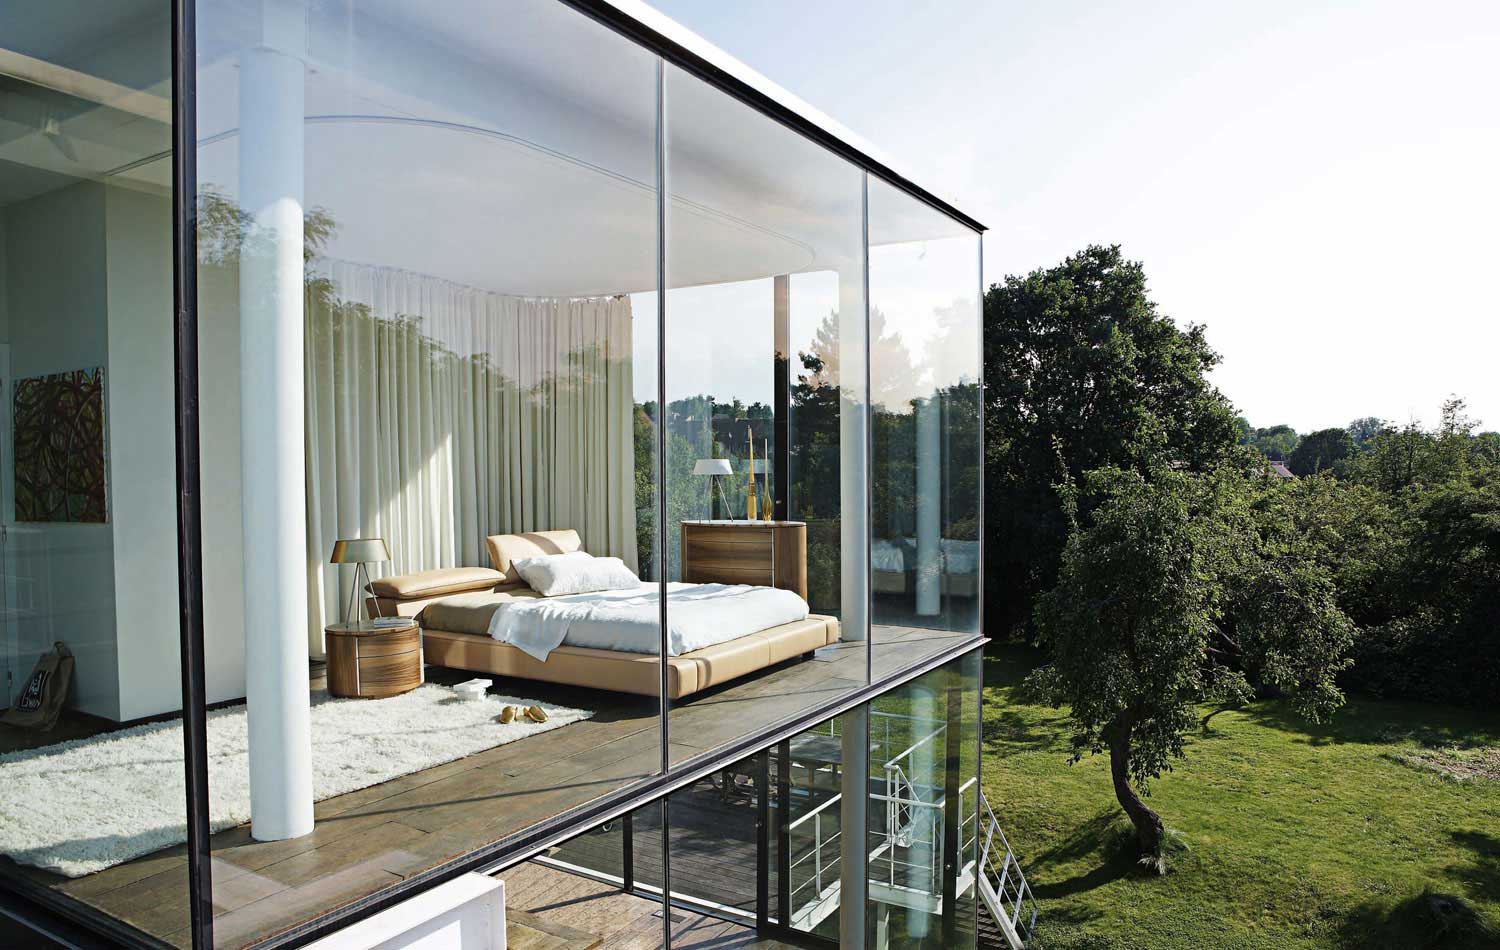 Bedroom Inspiration: 20 Modern Beds by Roche Bobois | Architecture & Design